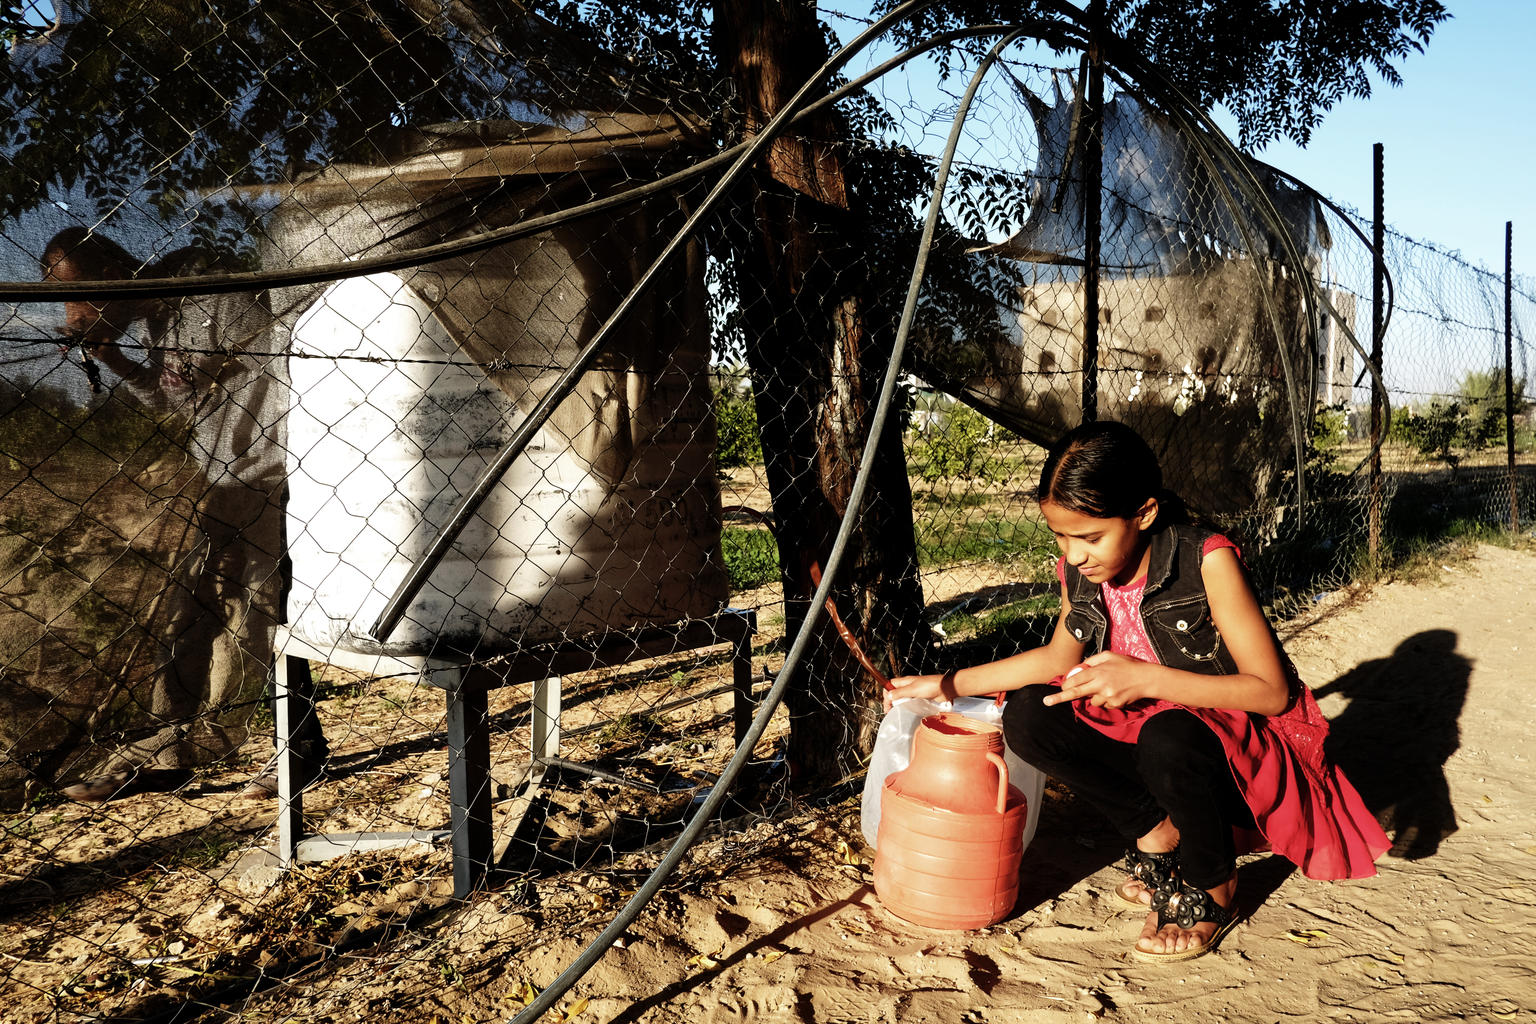 A young lady squatting on the ground as she uses a hose to fill water into two jerrycans.